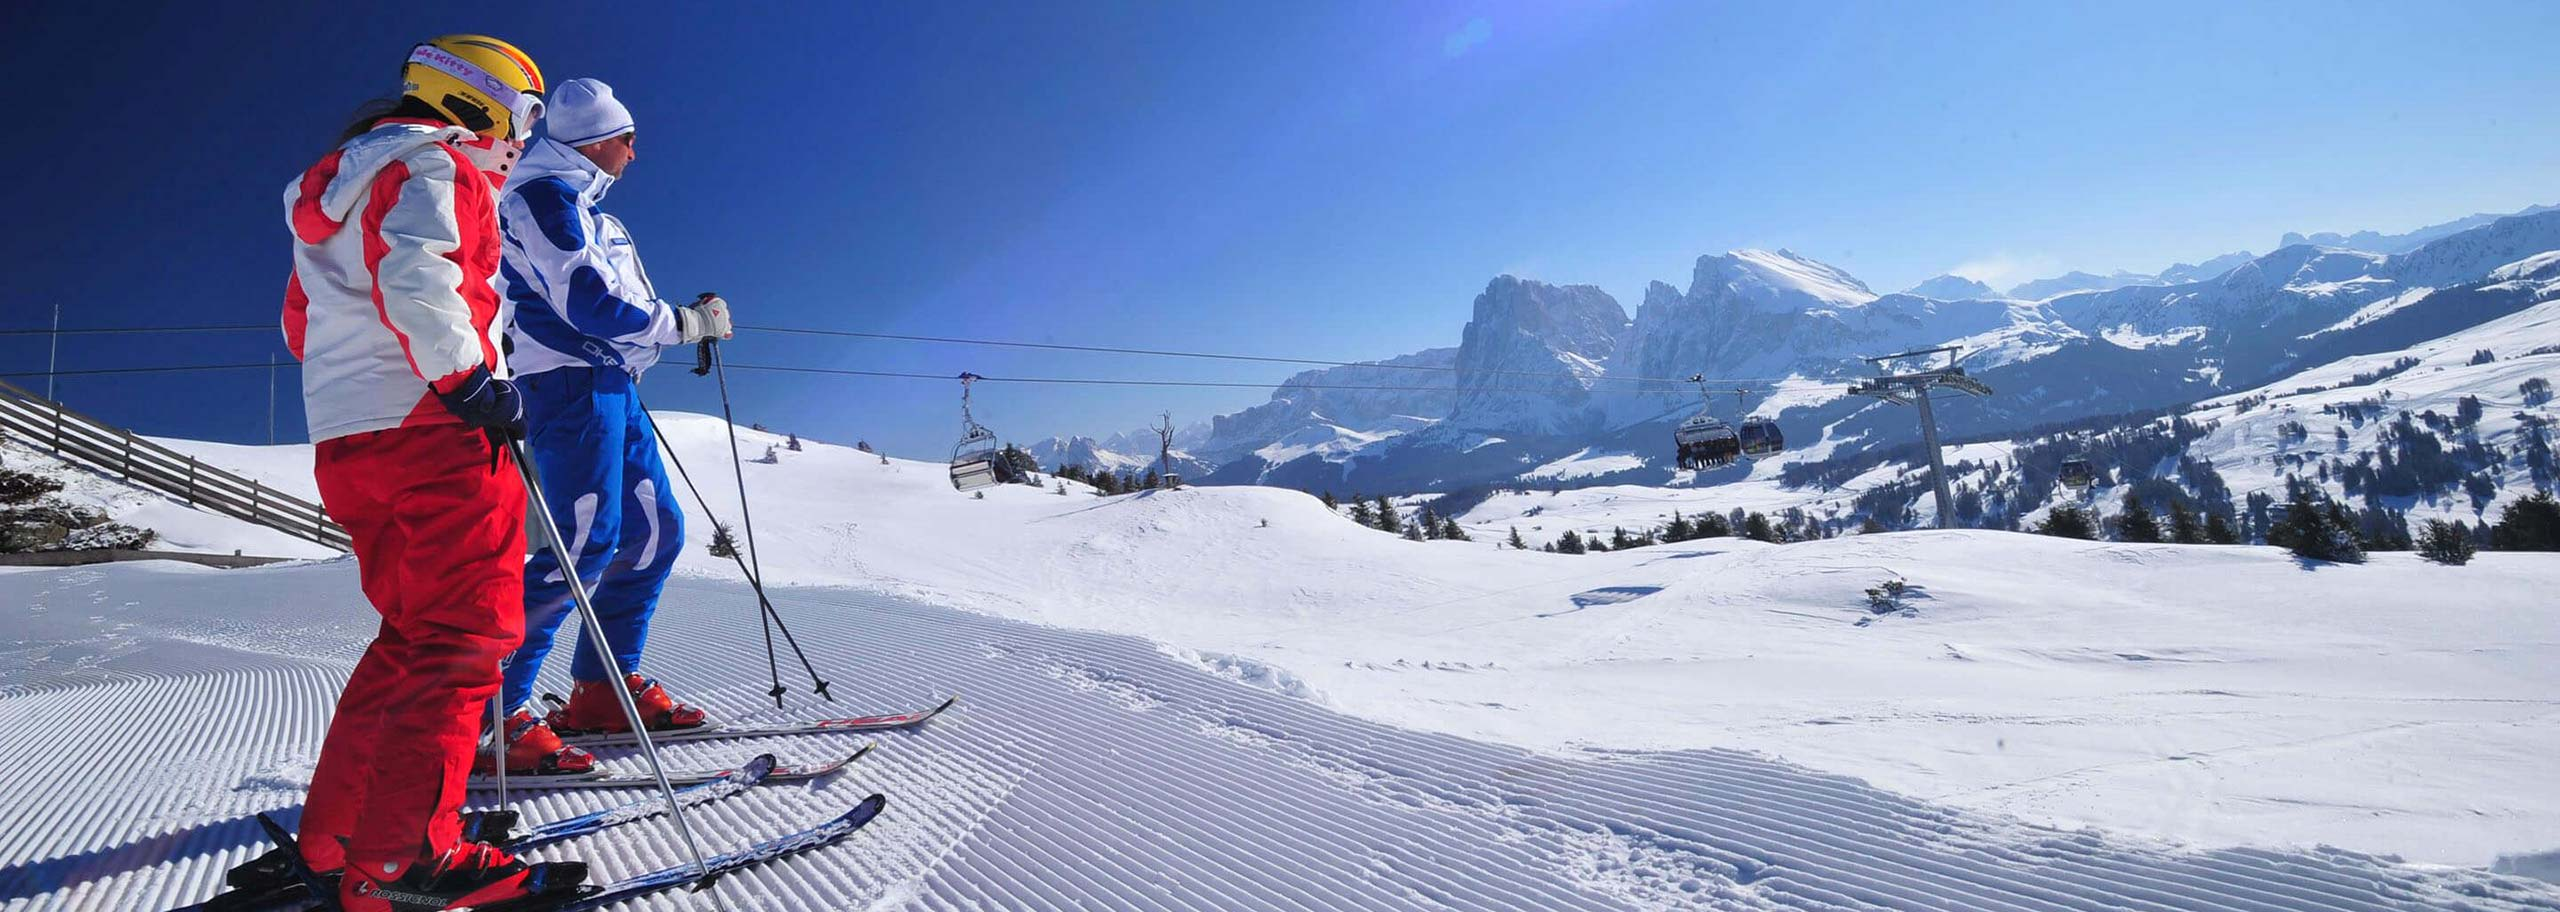 Ski Tour with a Mountain Guide in the Alpe di Siusi